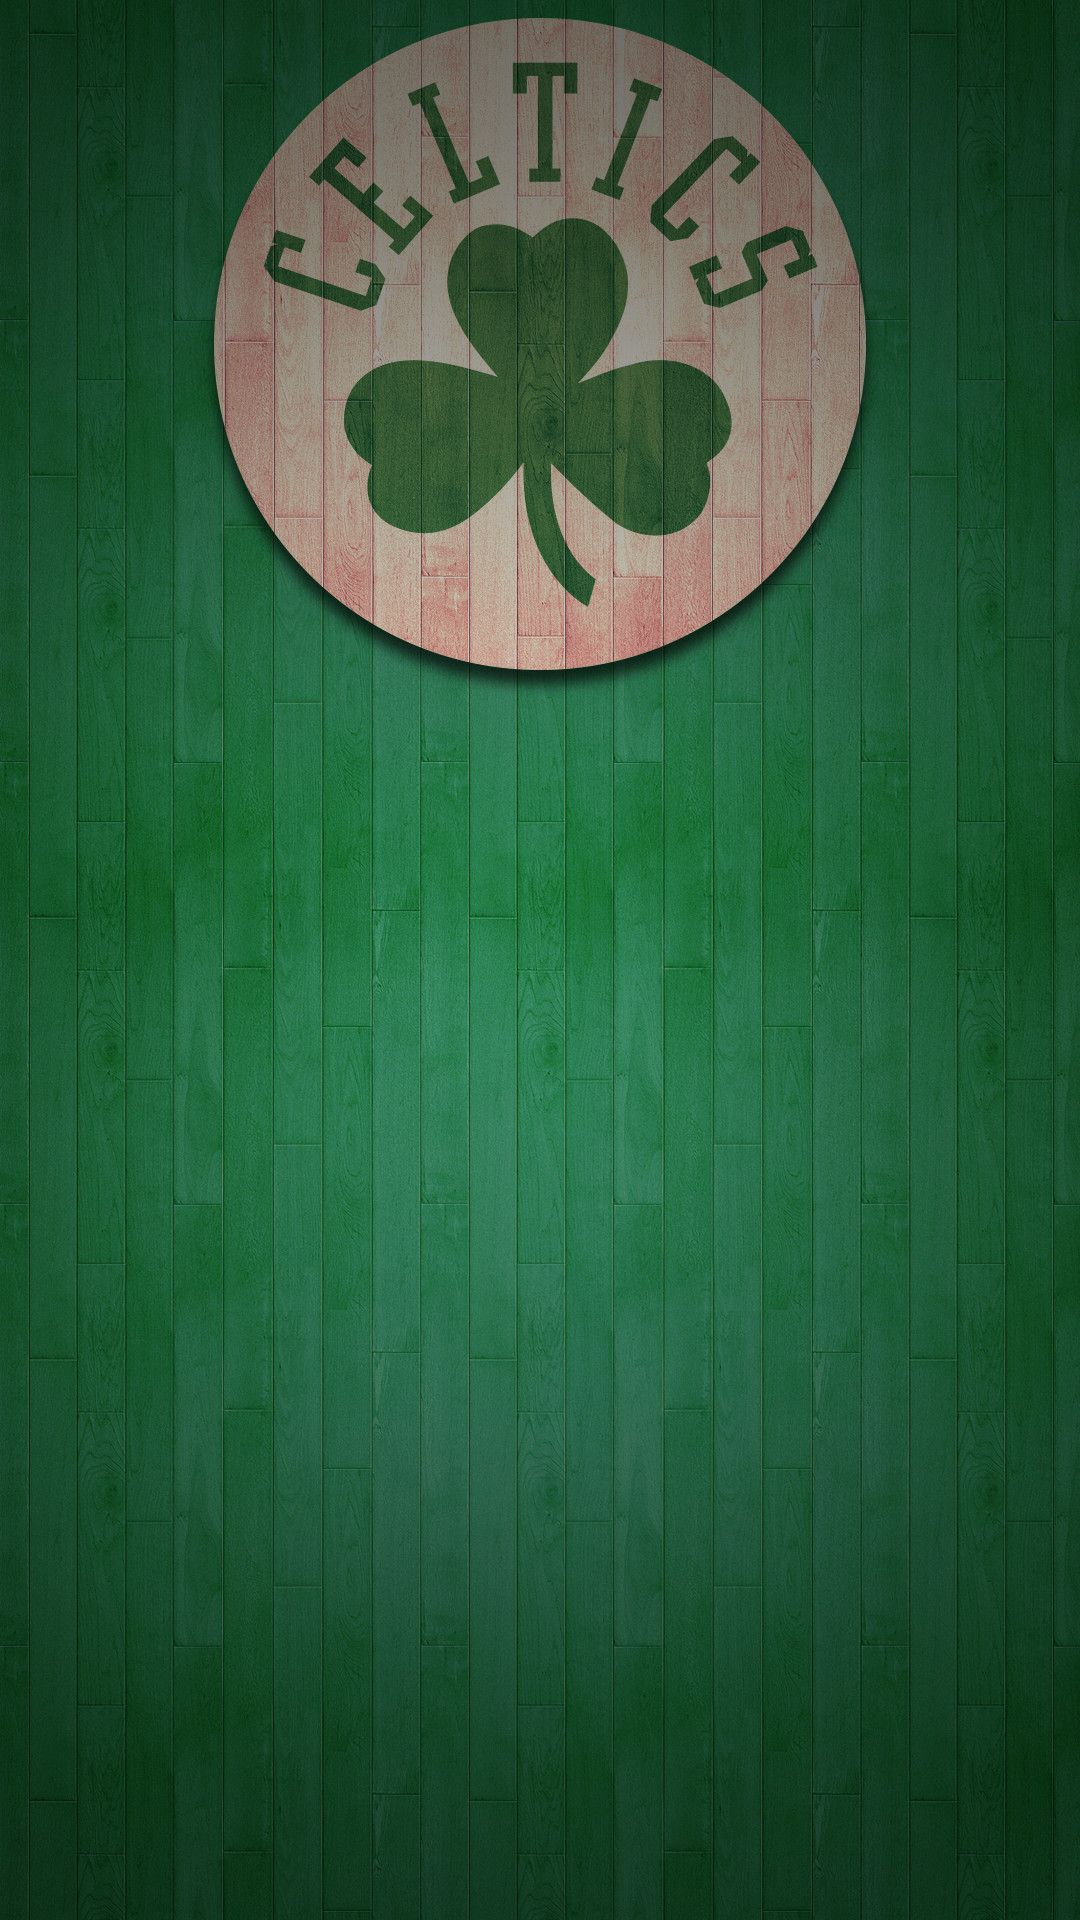 1080x1920 Boston Celtics 2017 Mobile home screen wallpaper